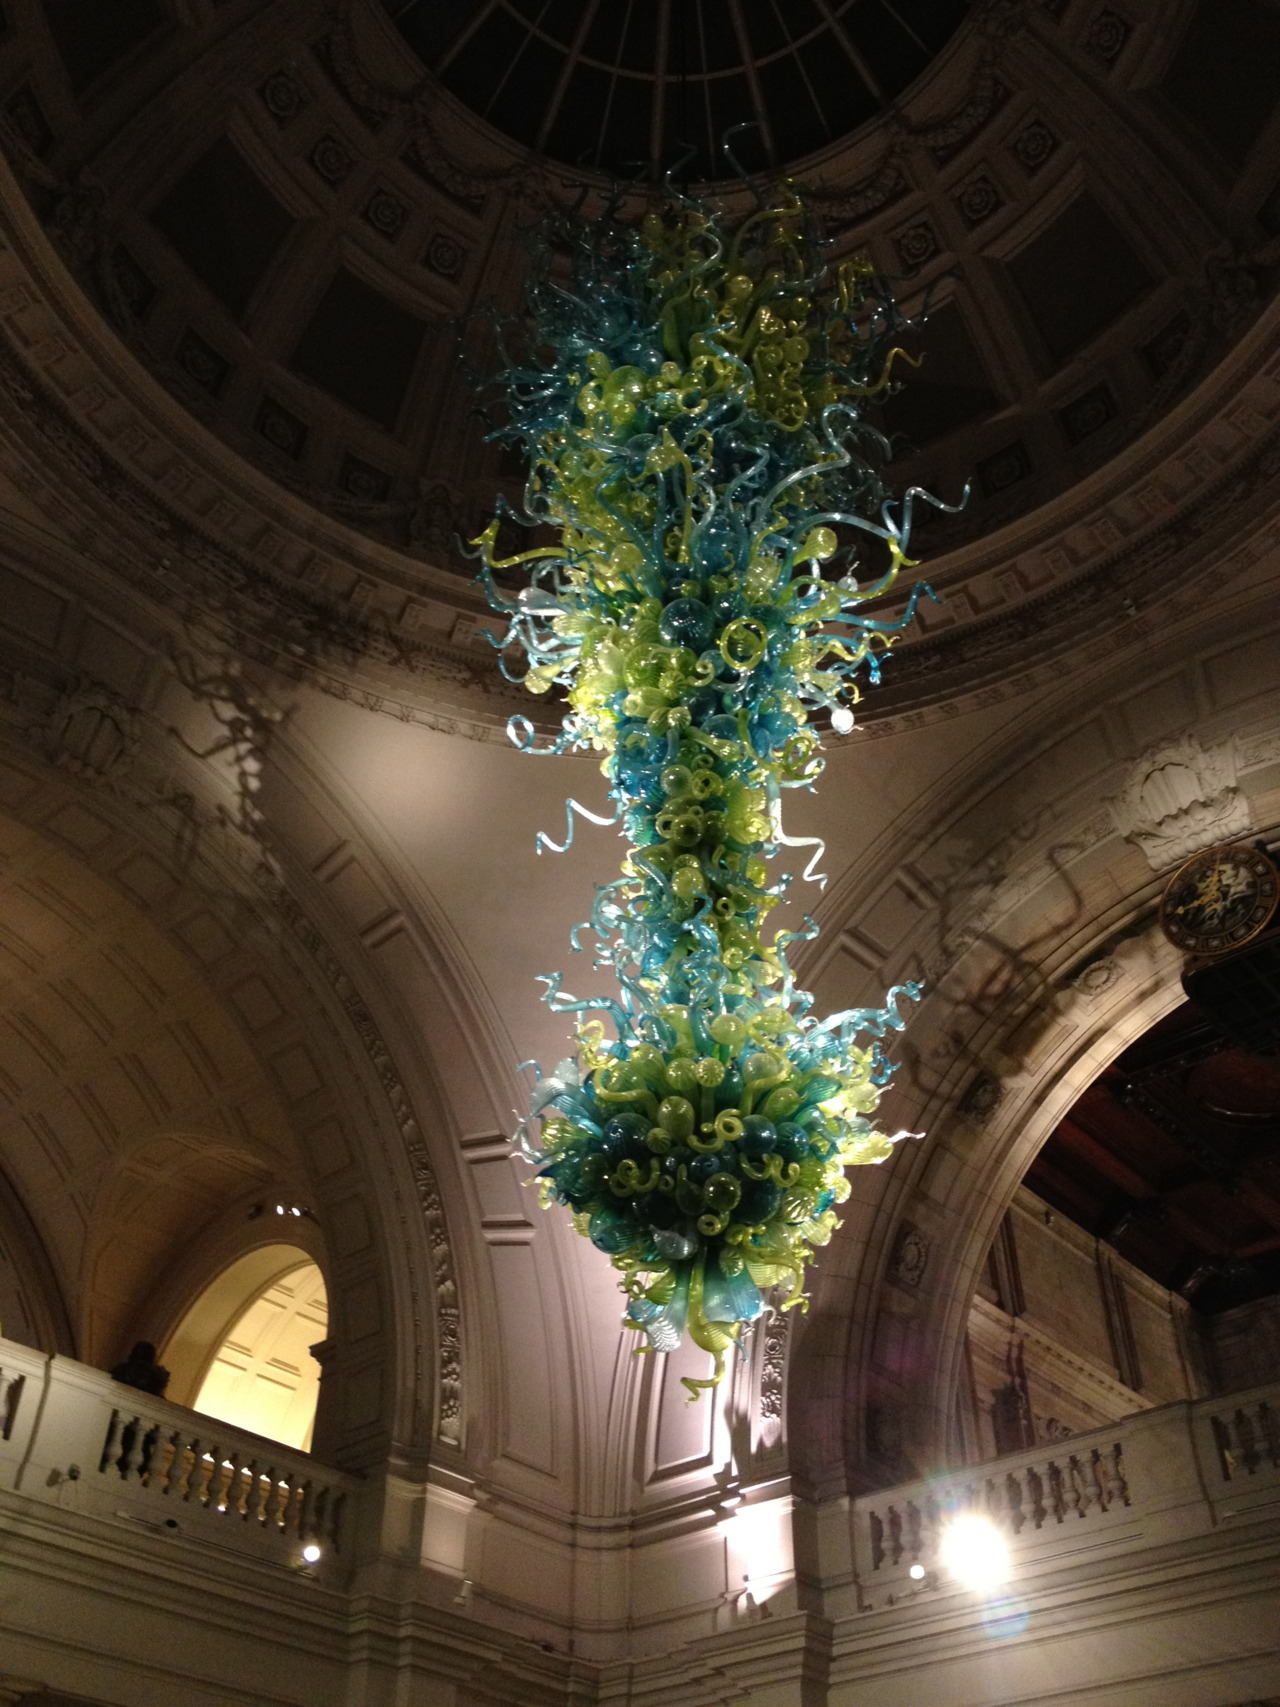 Spotted last night: a stunning Dale Chihuly glass sculpture in the Grand Entrance of the Victoria and Albert Museum during the Friday Late night event.  …(Which I will write more about later- I attended a fascinating talk by the duo behind studio Glithero in London)